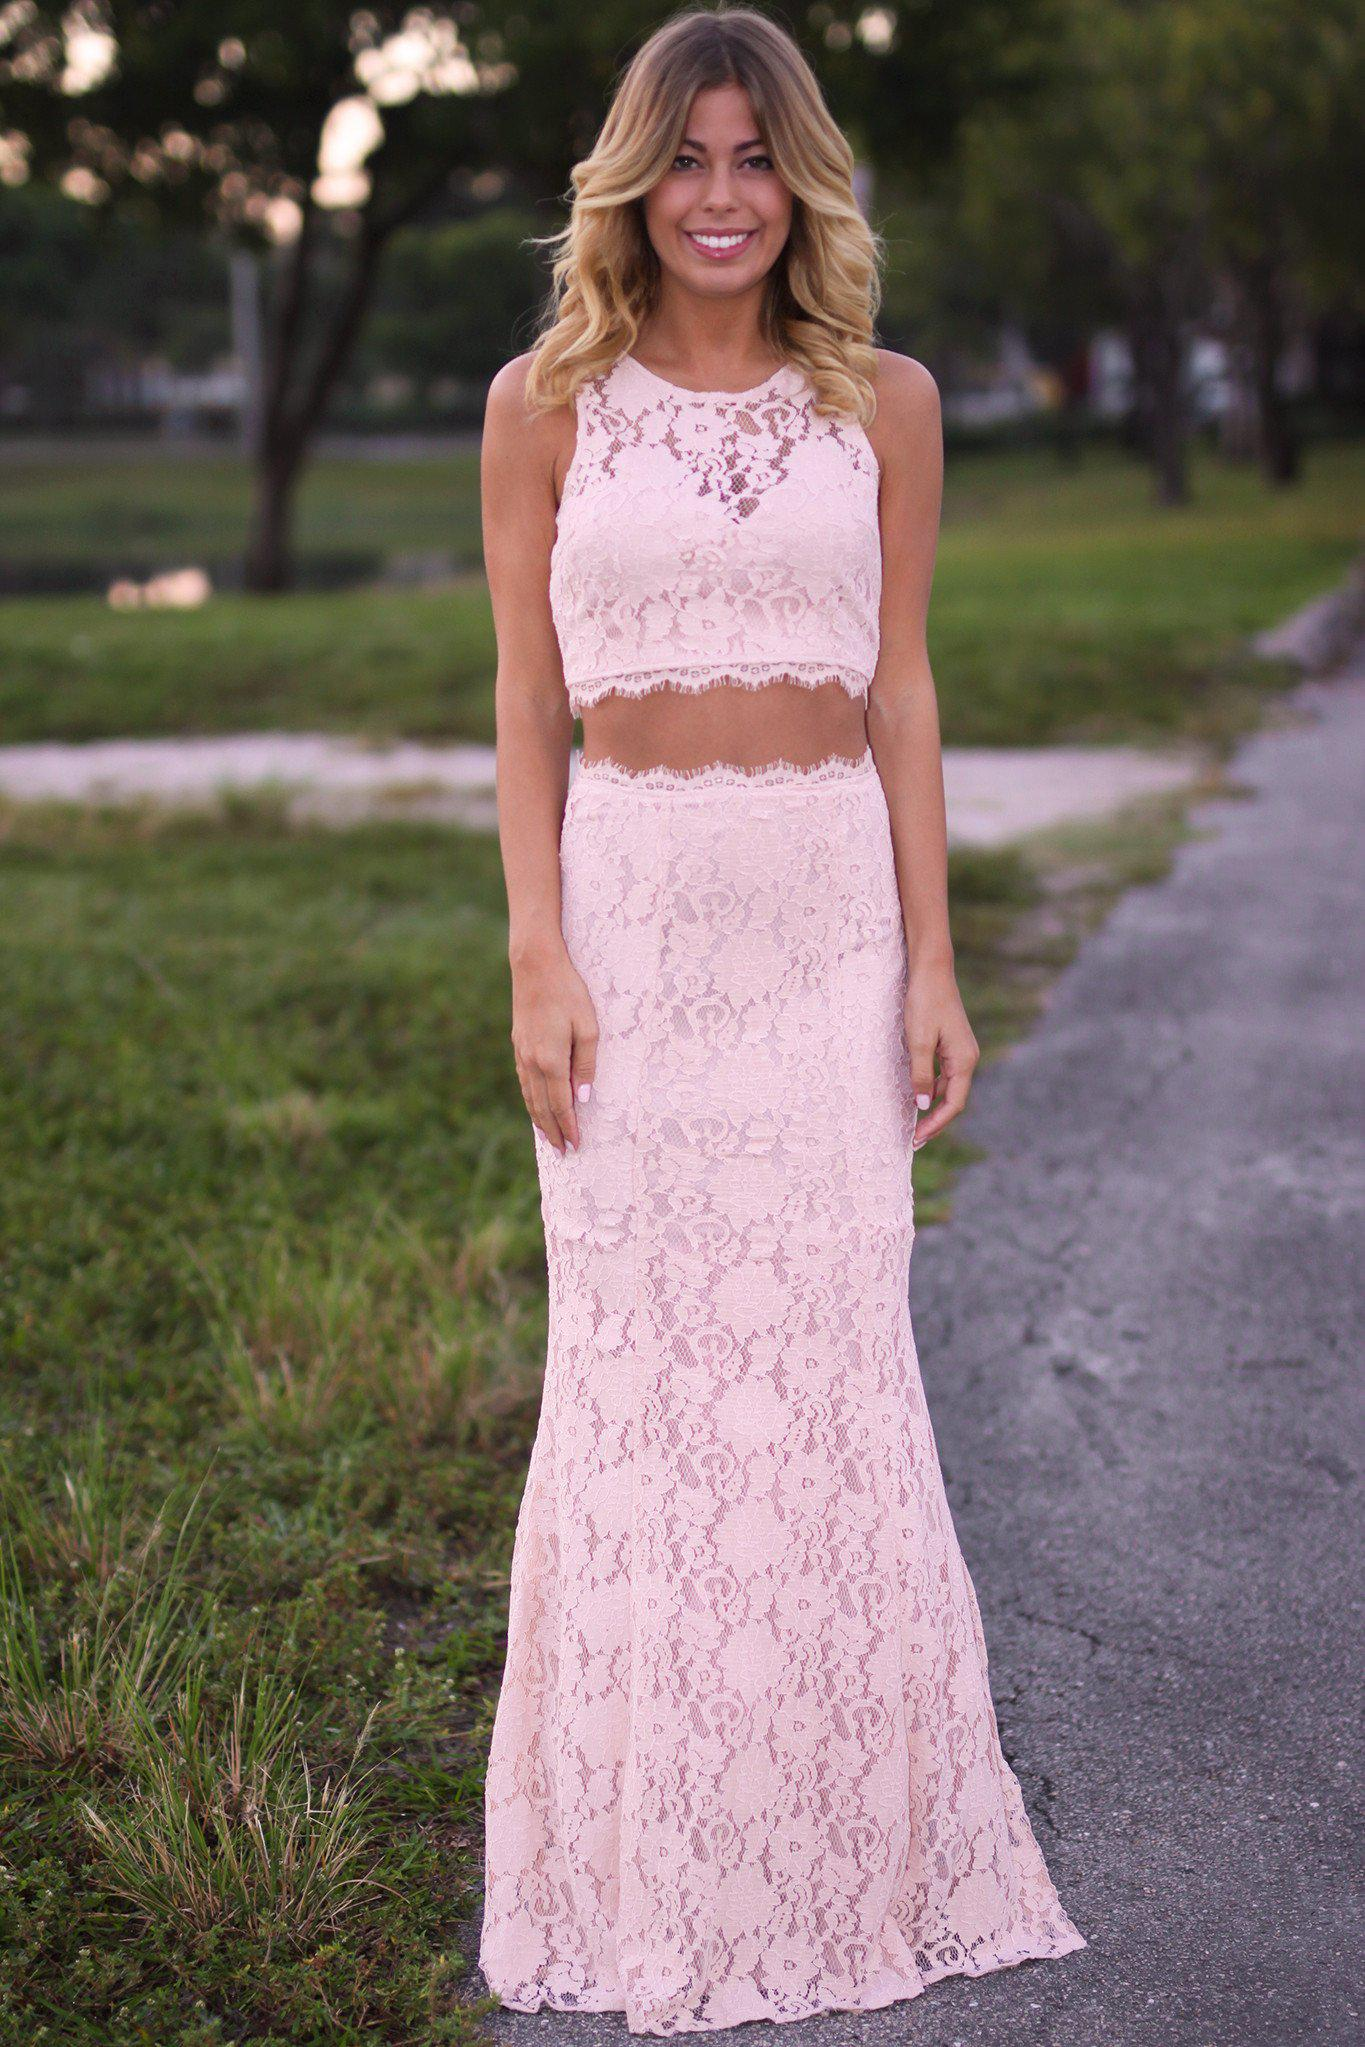 Blush Lace Crop Top and Skirt Set